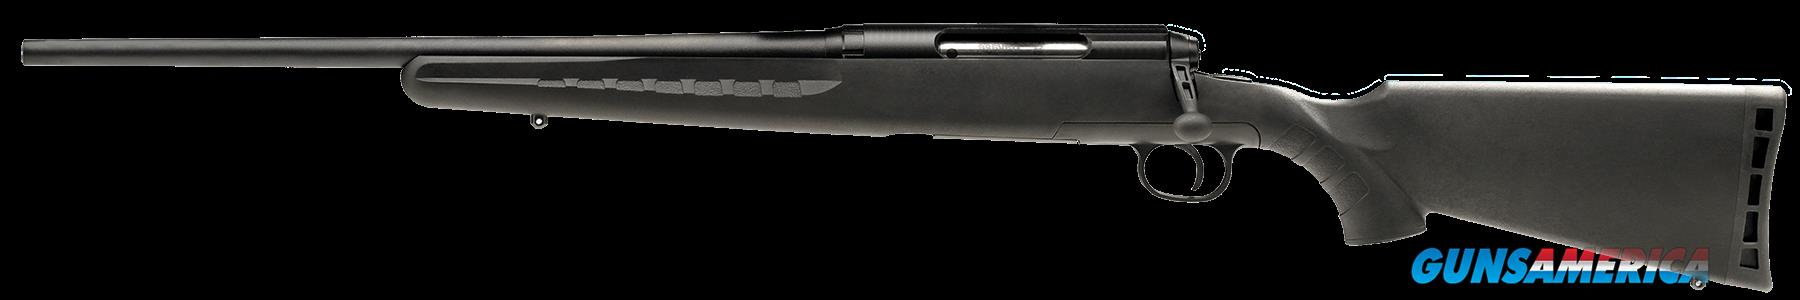 "Savage 19652 Axis Compact LH Bolt 223 Remington 20"" 4+1 Synthetic Black Stk Blued  Guns > Rifles > S Misc Rifles"